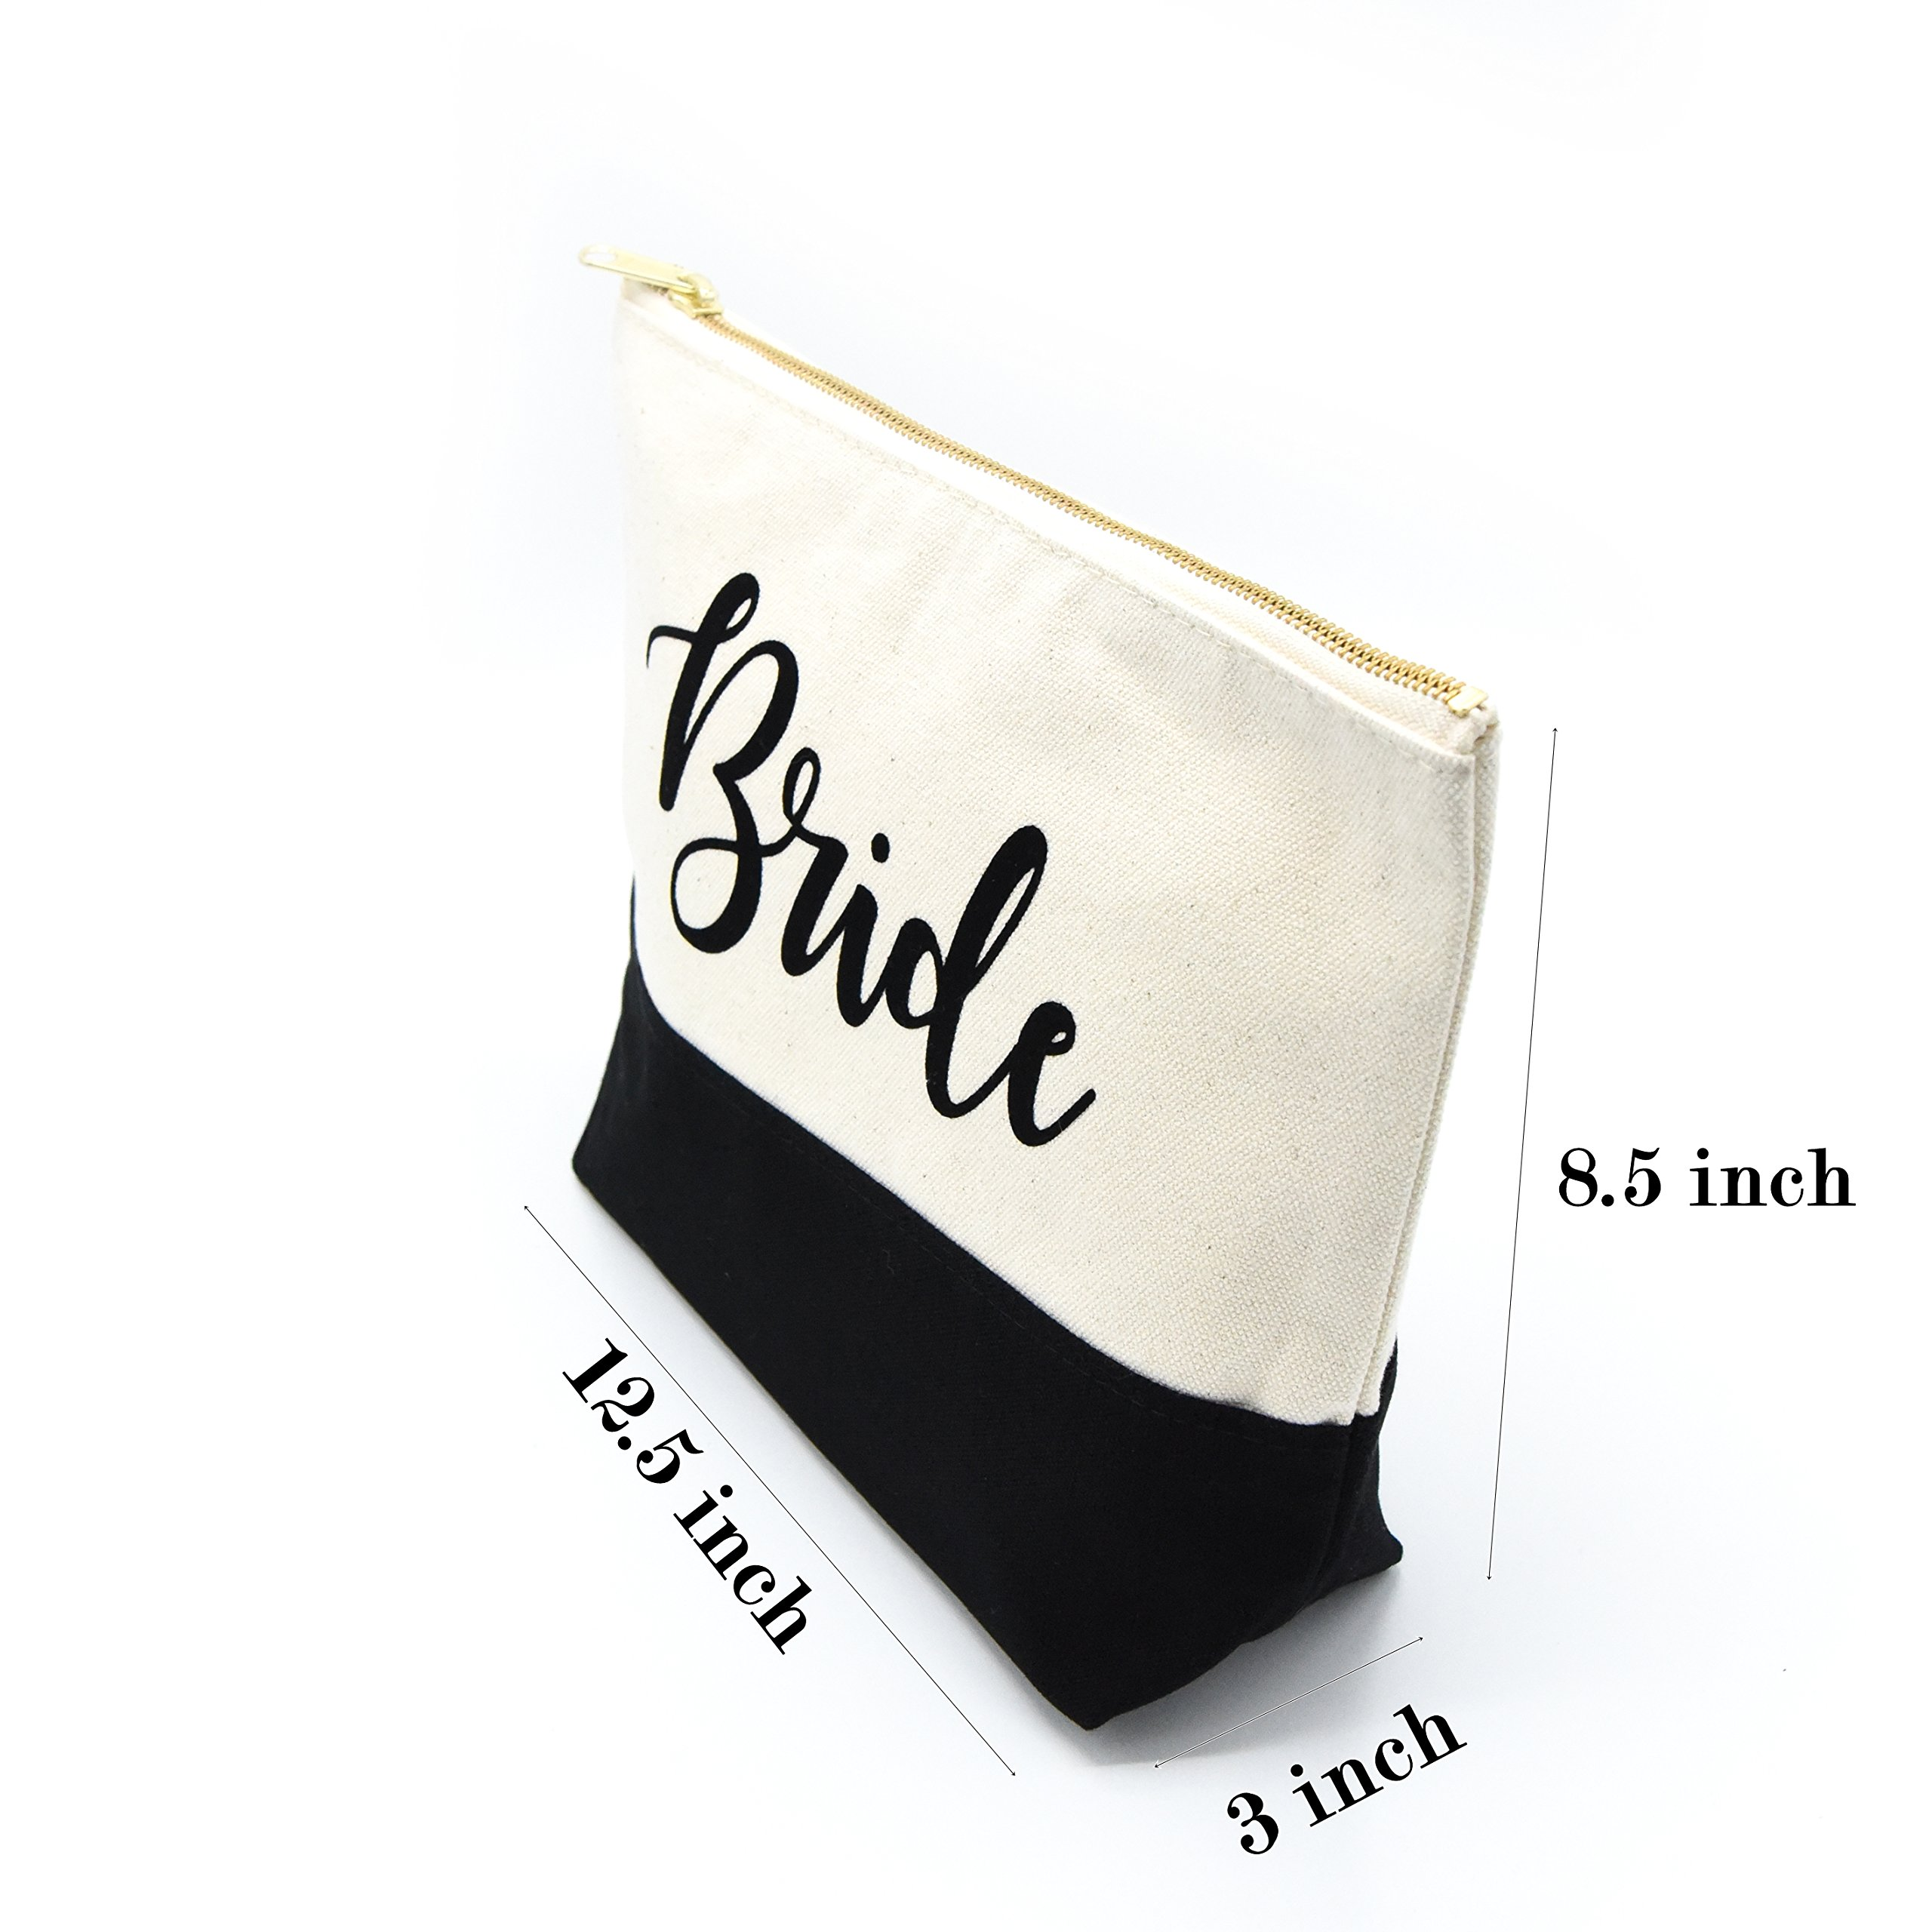 PumPumpz Personalized Gifts Wedding ''Bride'' Large Canvas Travel YKK Zipper Makeup Bag.''Which arrive you within 5 days'' (Bride Black) by PumPumpz (Image #6)